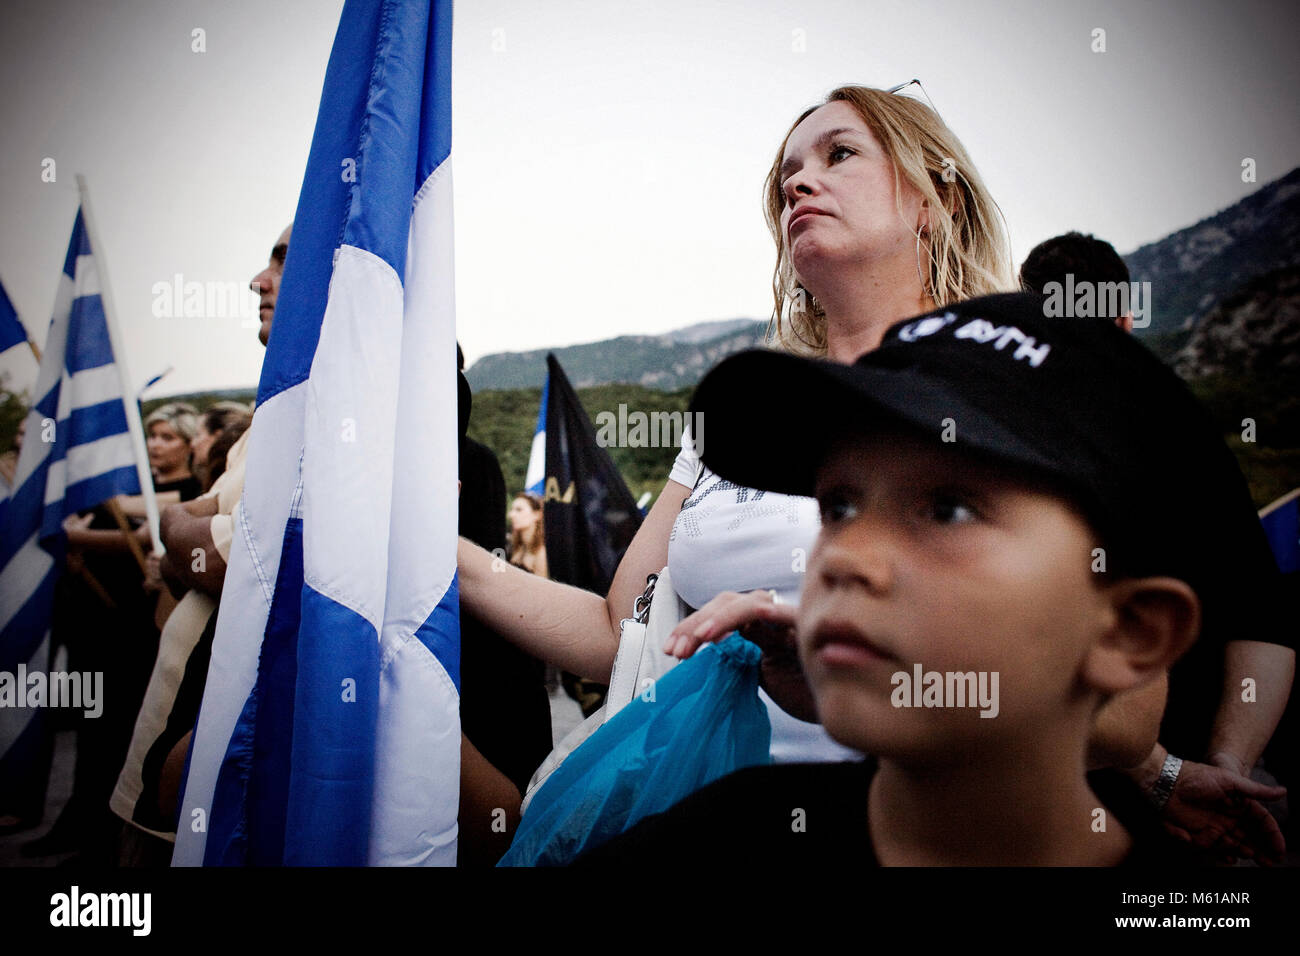 -  25/08/2012  -  Athens  -  A young boy wears Chryssi Avgi hat and listens carefully to the speaches with his mother - Stock Image